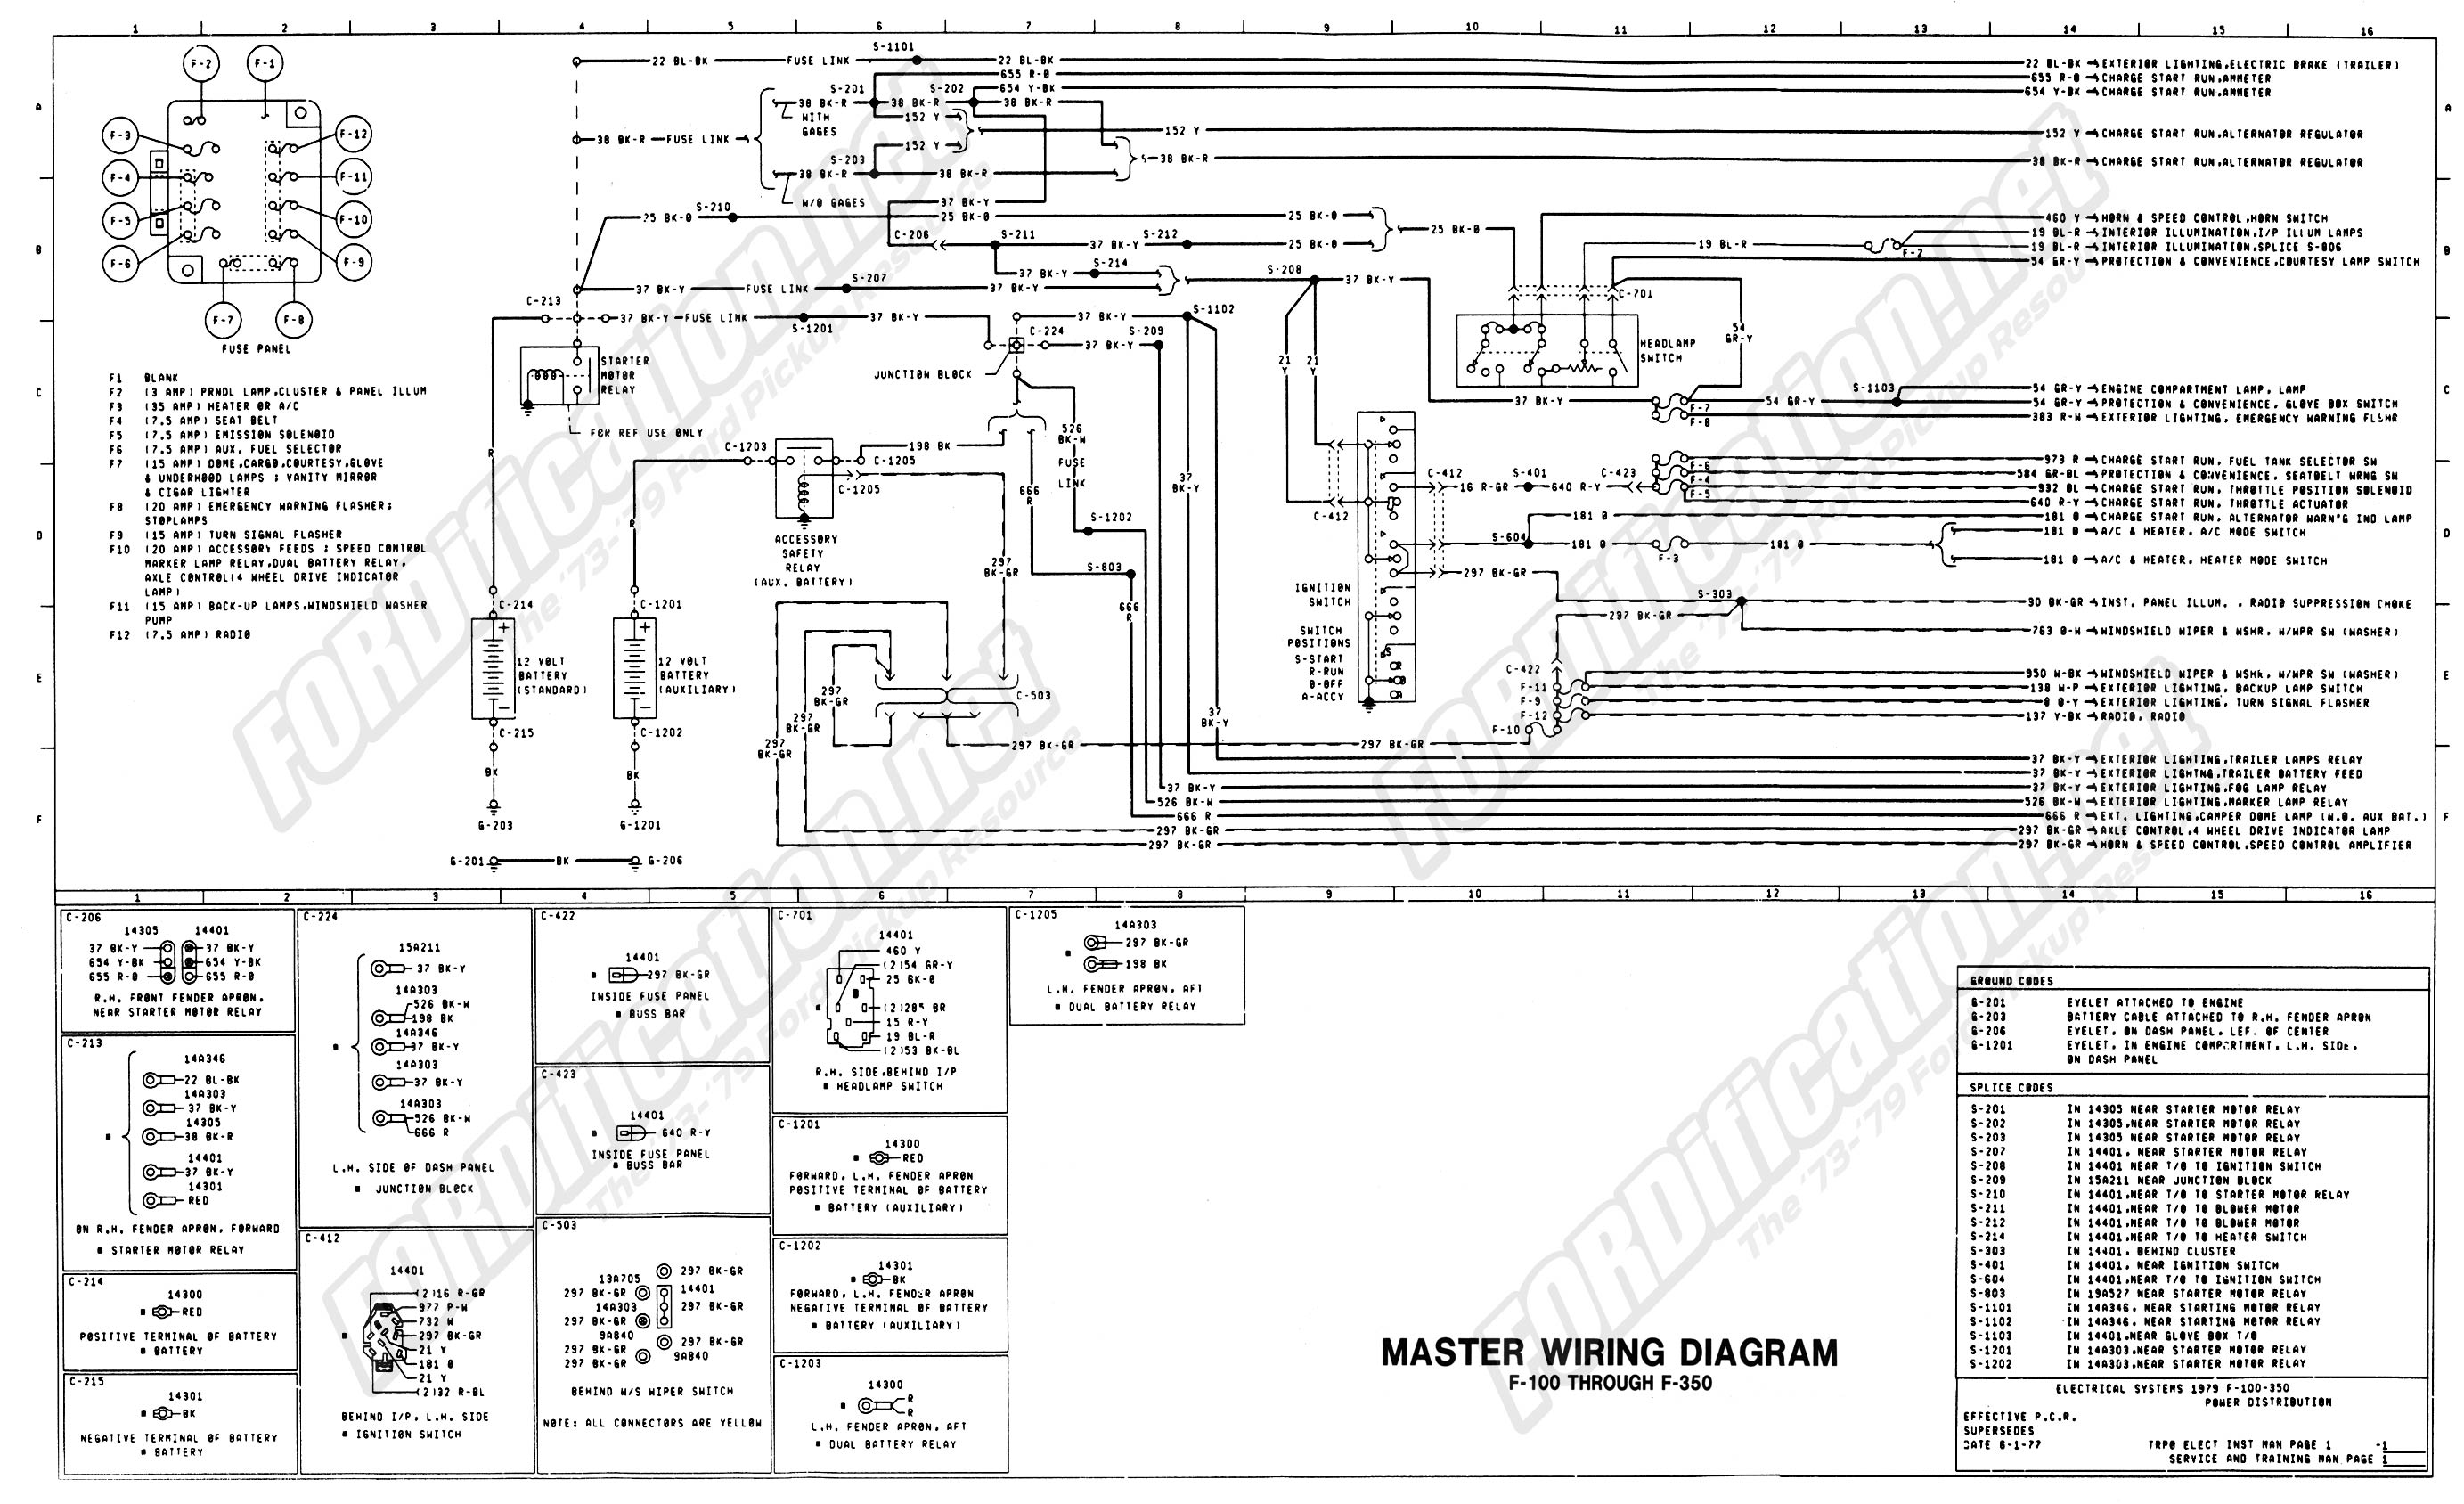 1973 1979 ford truck wiring diagrams schematics fordification net rh fordification net 1980 Ford Van 1980 Ford Van